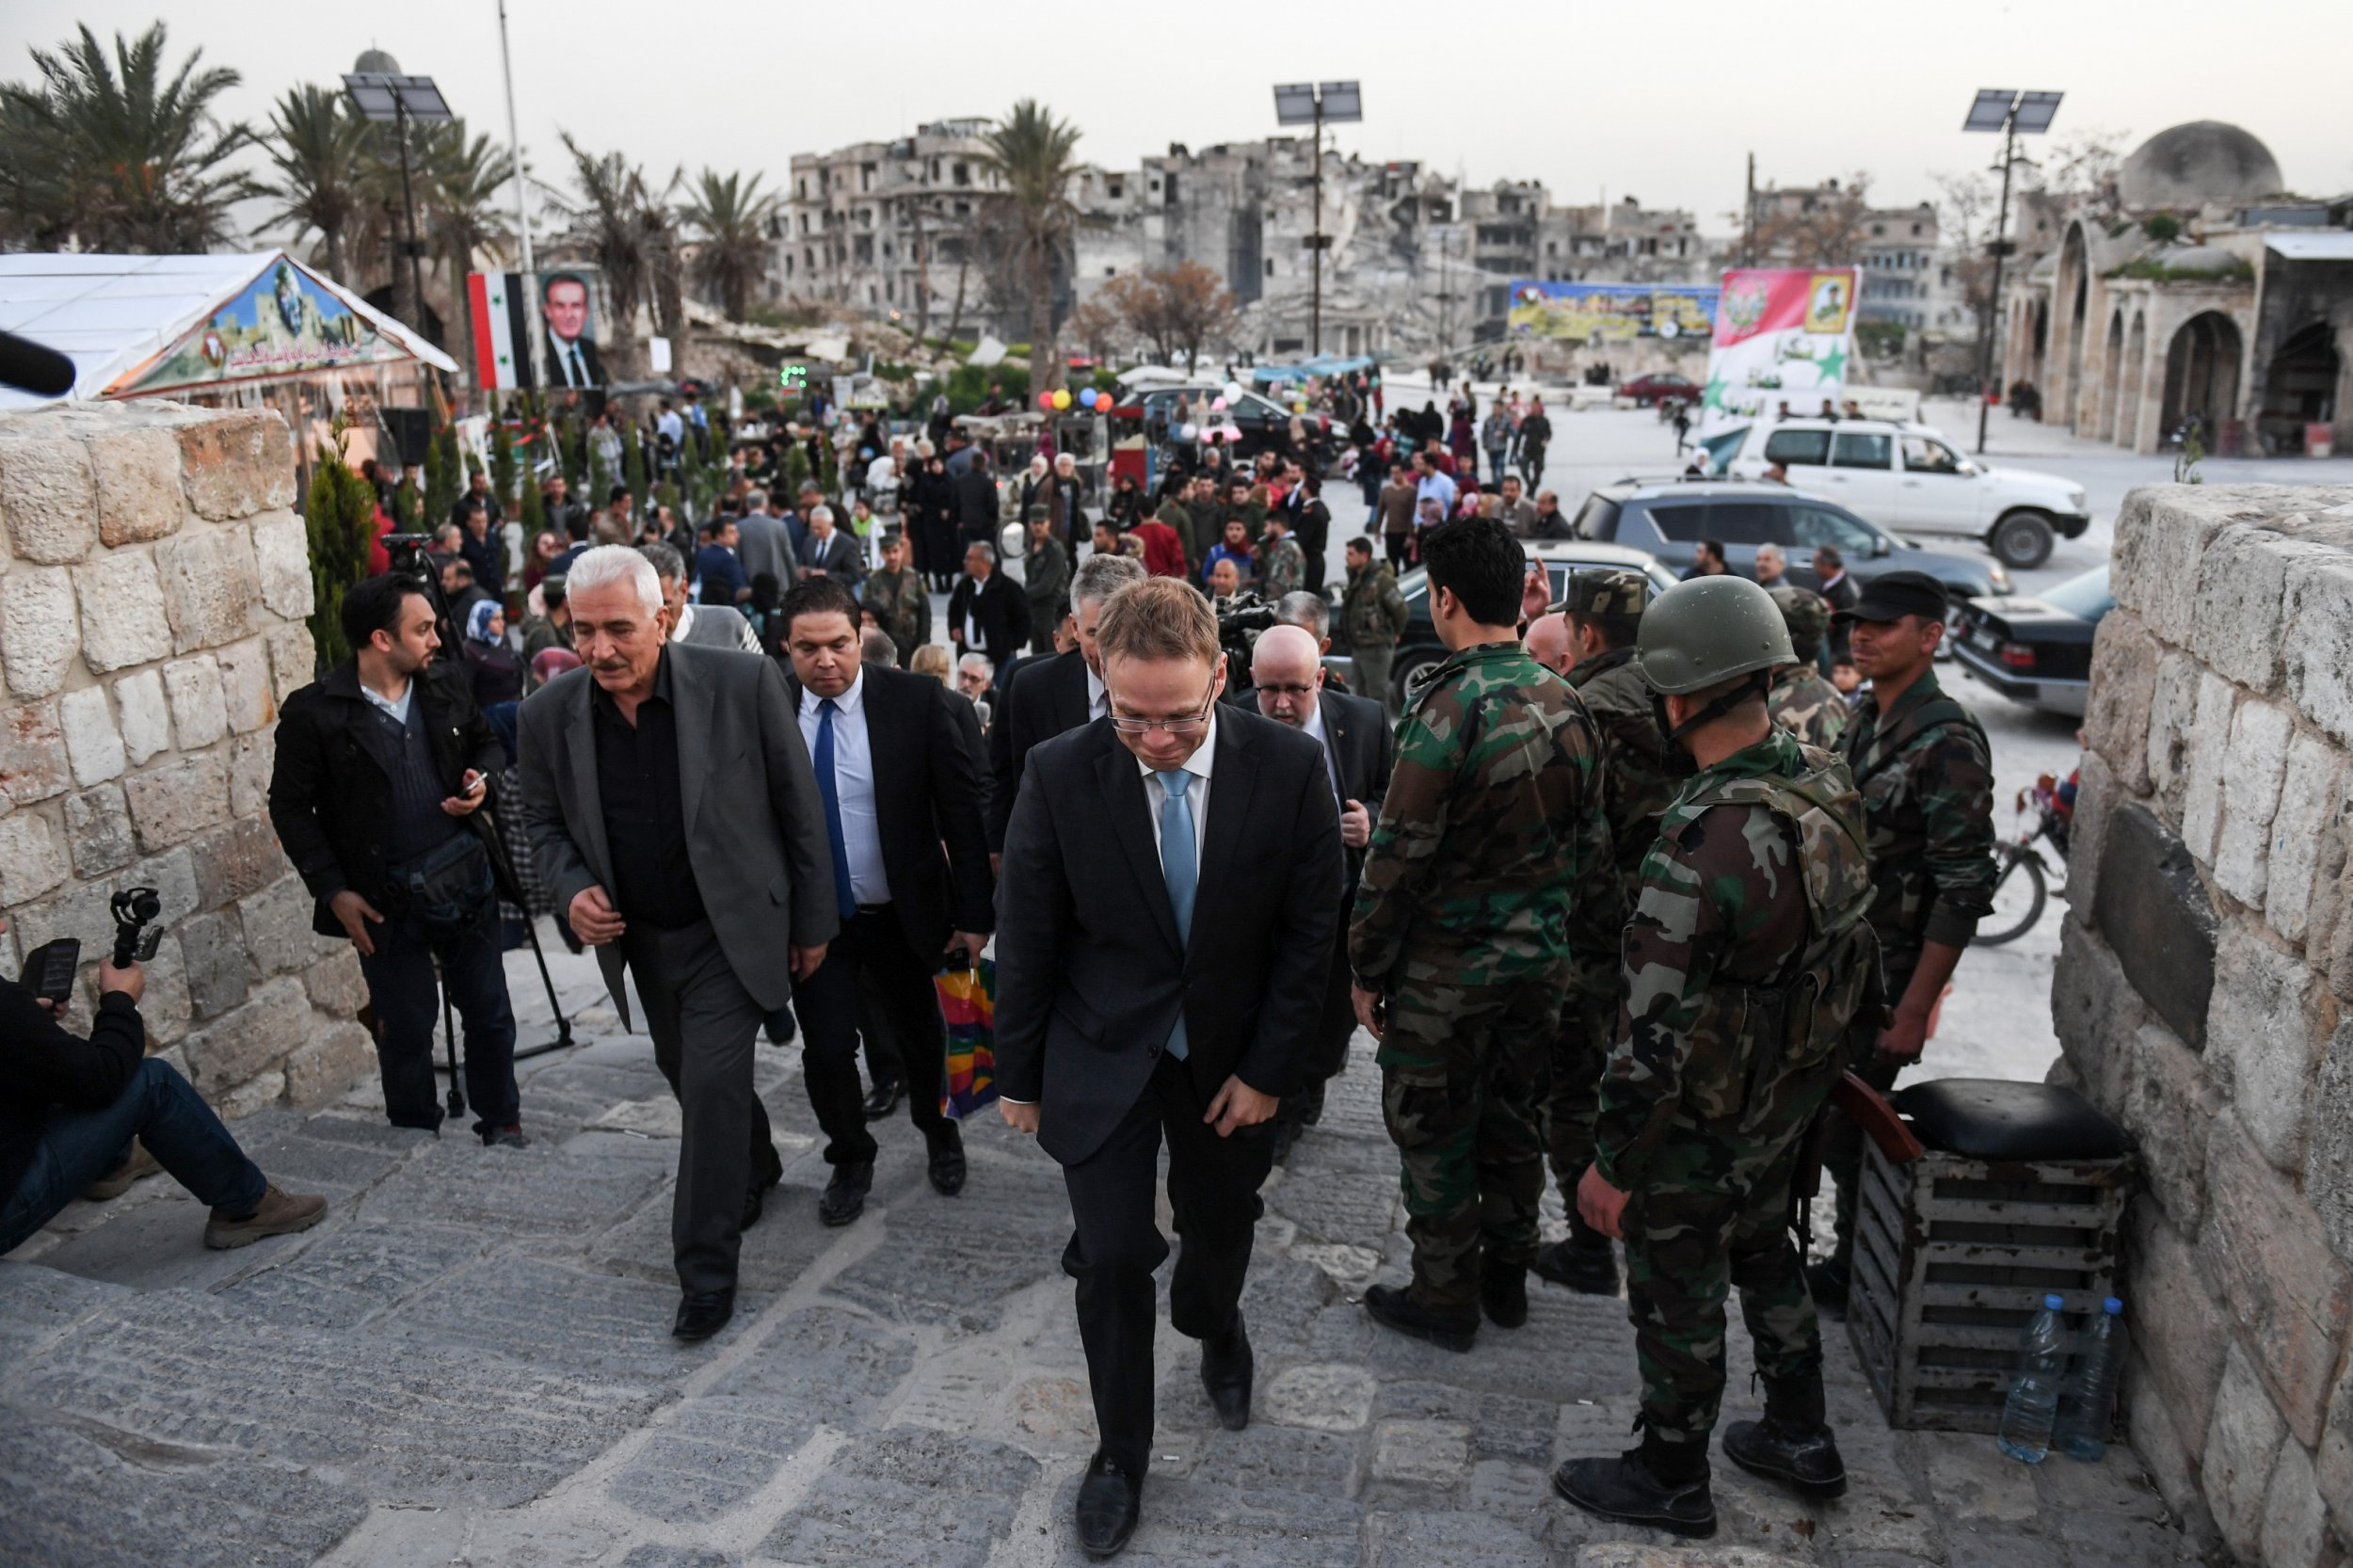 03_20_AfD_in_Syria